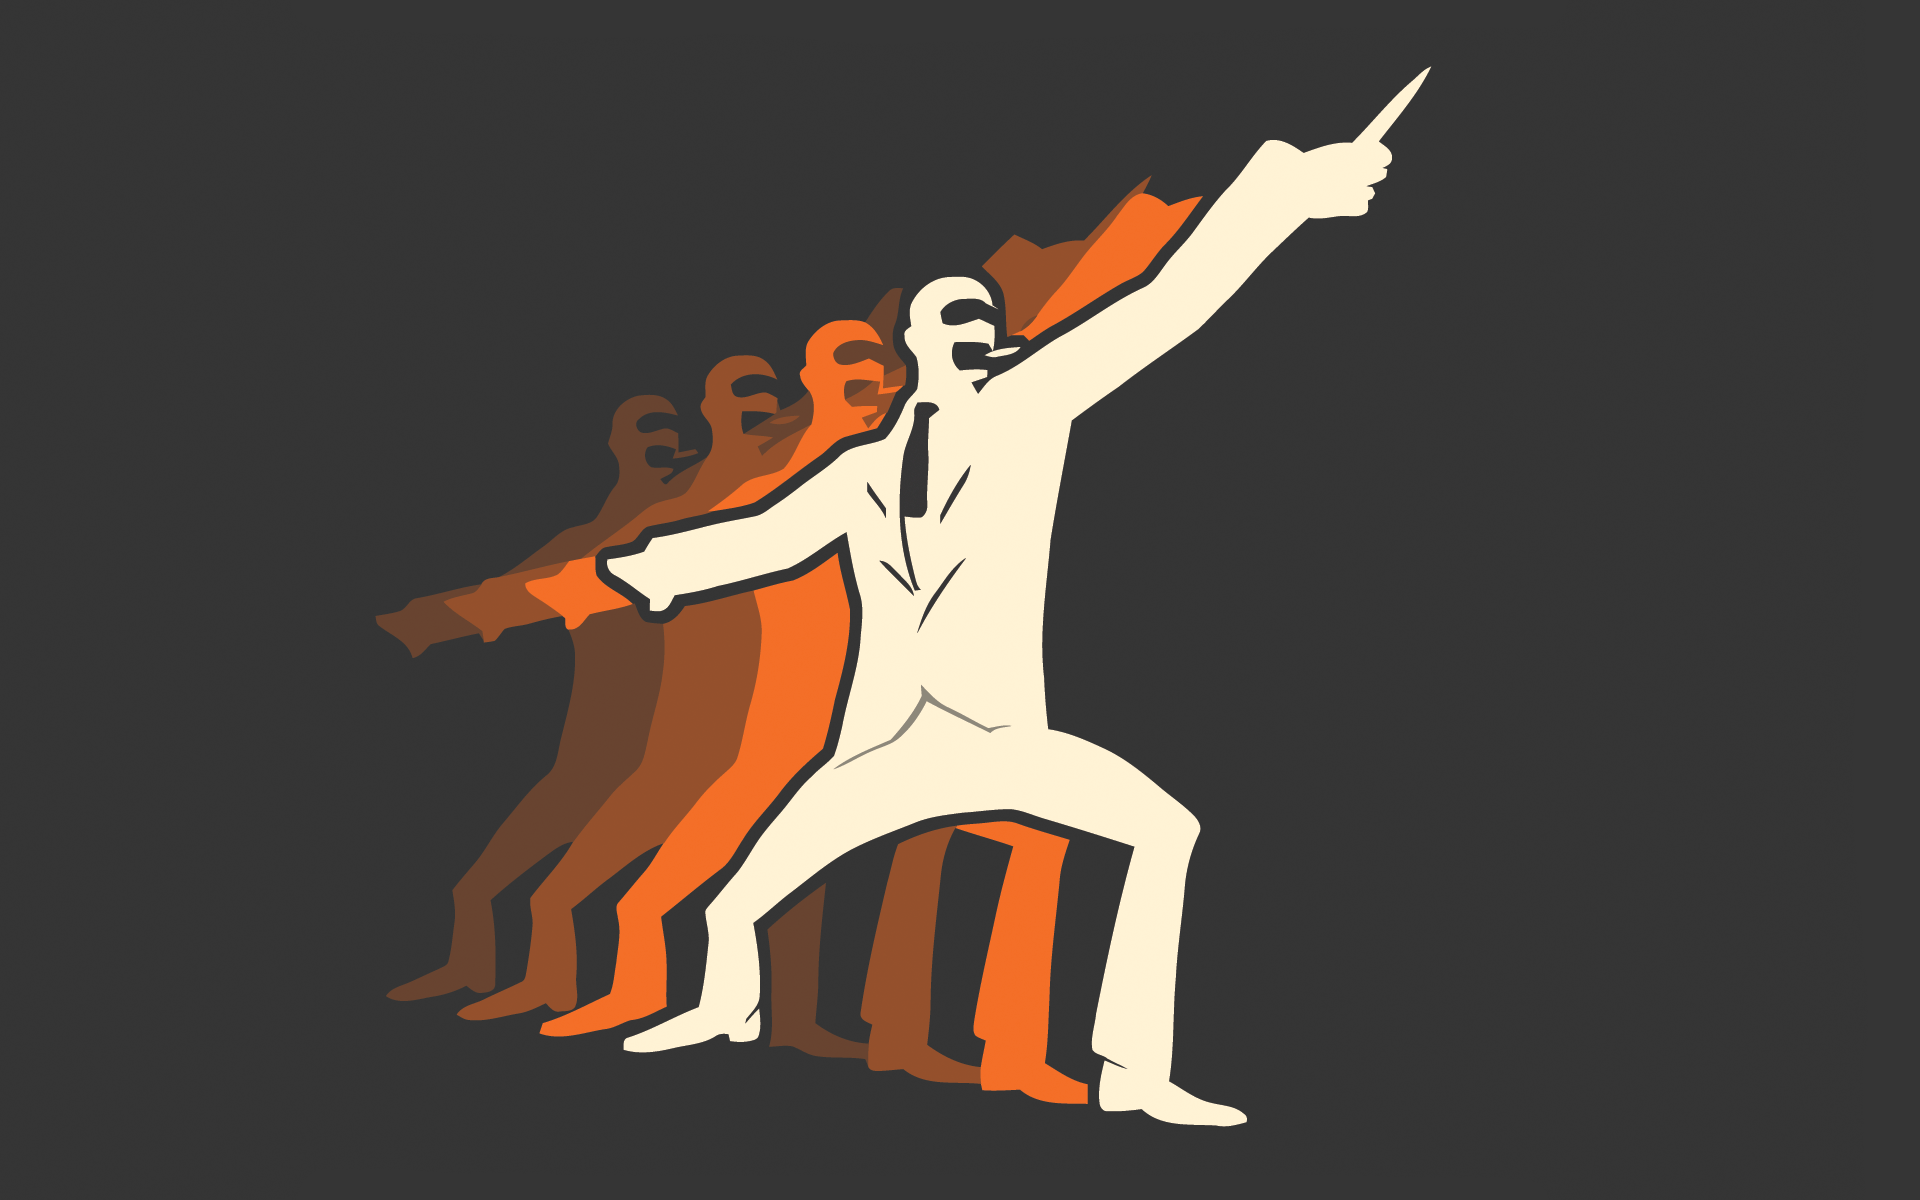 Team Fortress 2 Spy Wallpapers - Wallpaper Cave